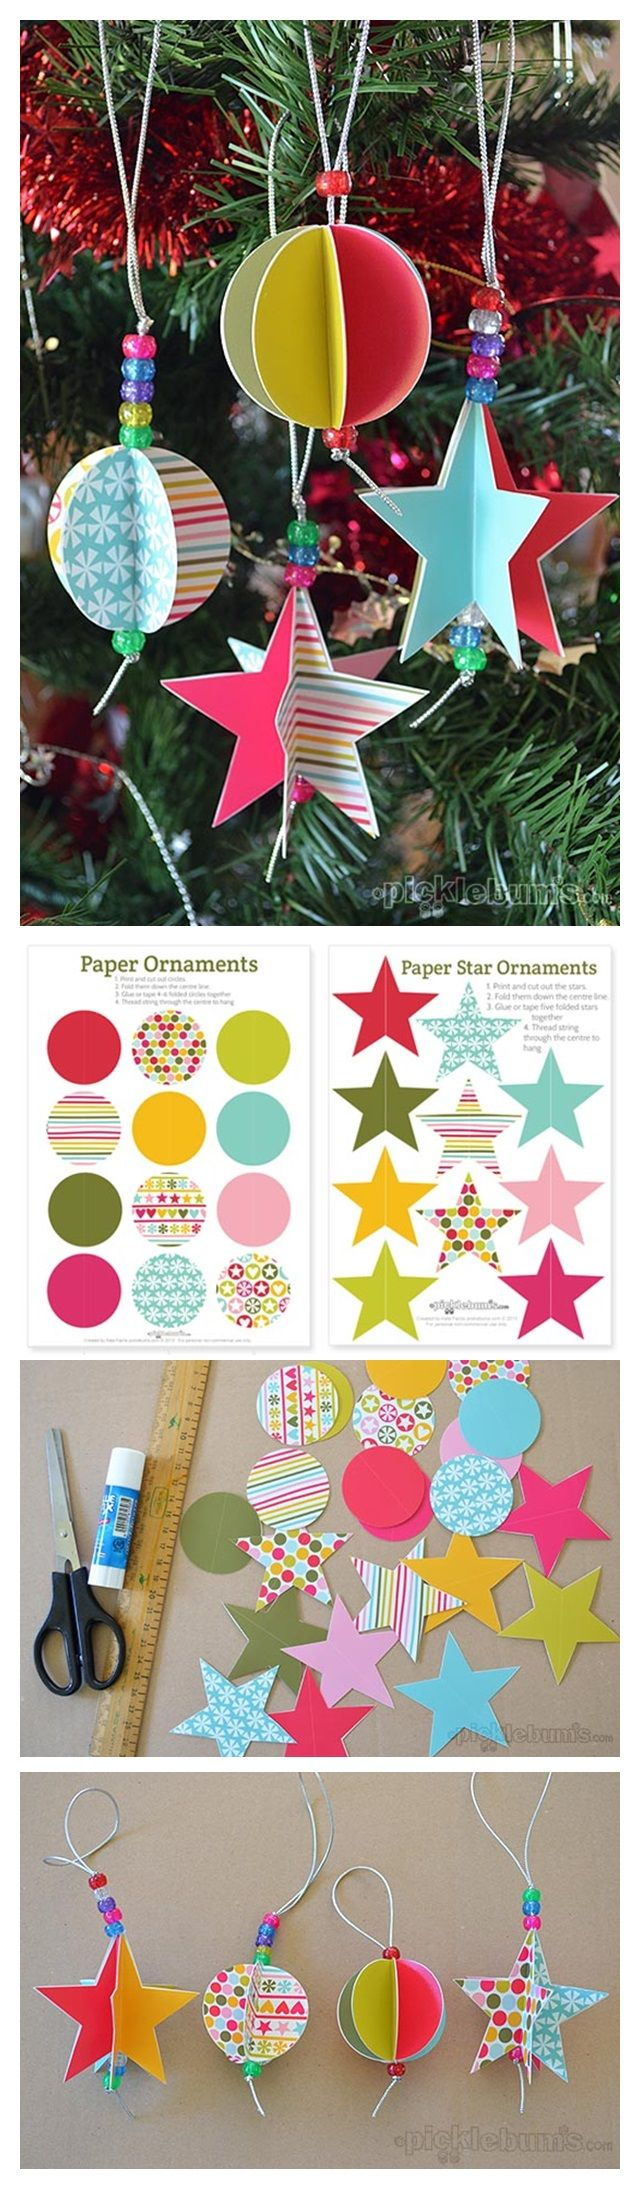 Star & circle paper decorations. Fre to download from Picklebums